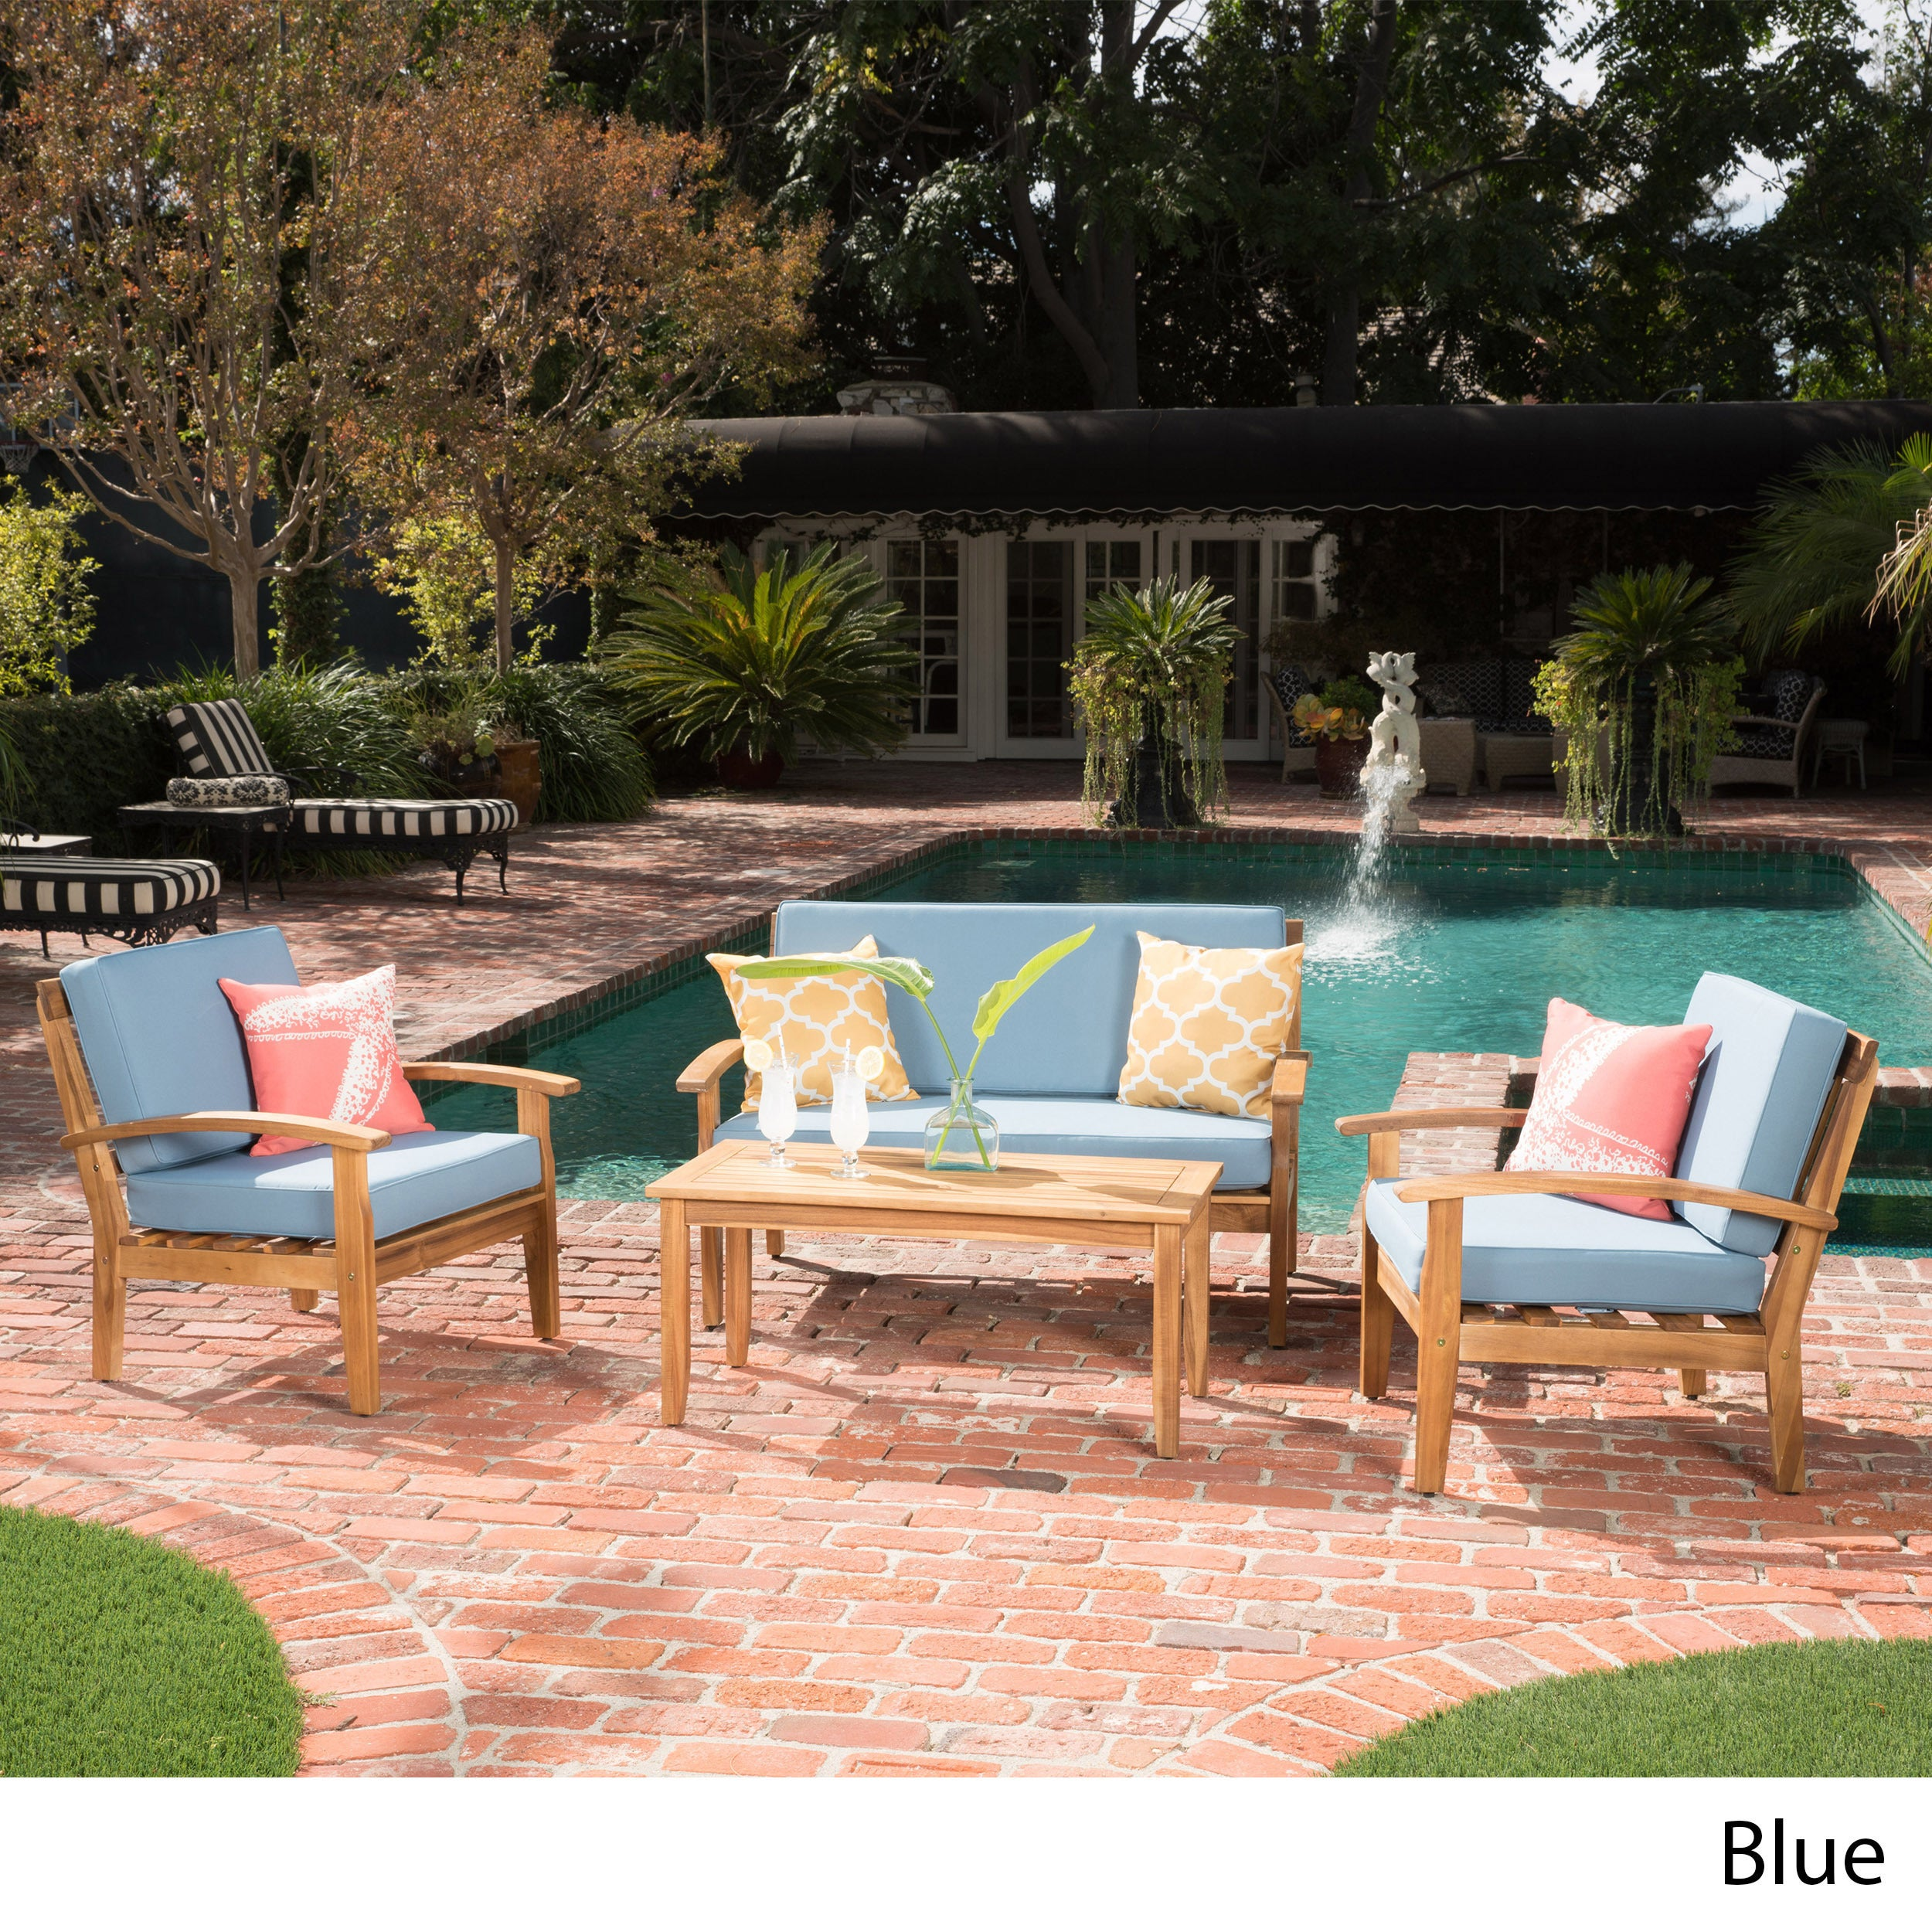 Shop peyton 4 piece outdoor wooden chat set with cushions by christopher knight home on sale free shipping today overstock com 12991322